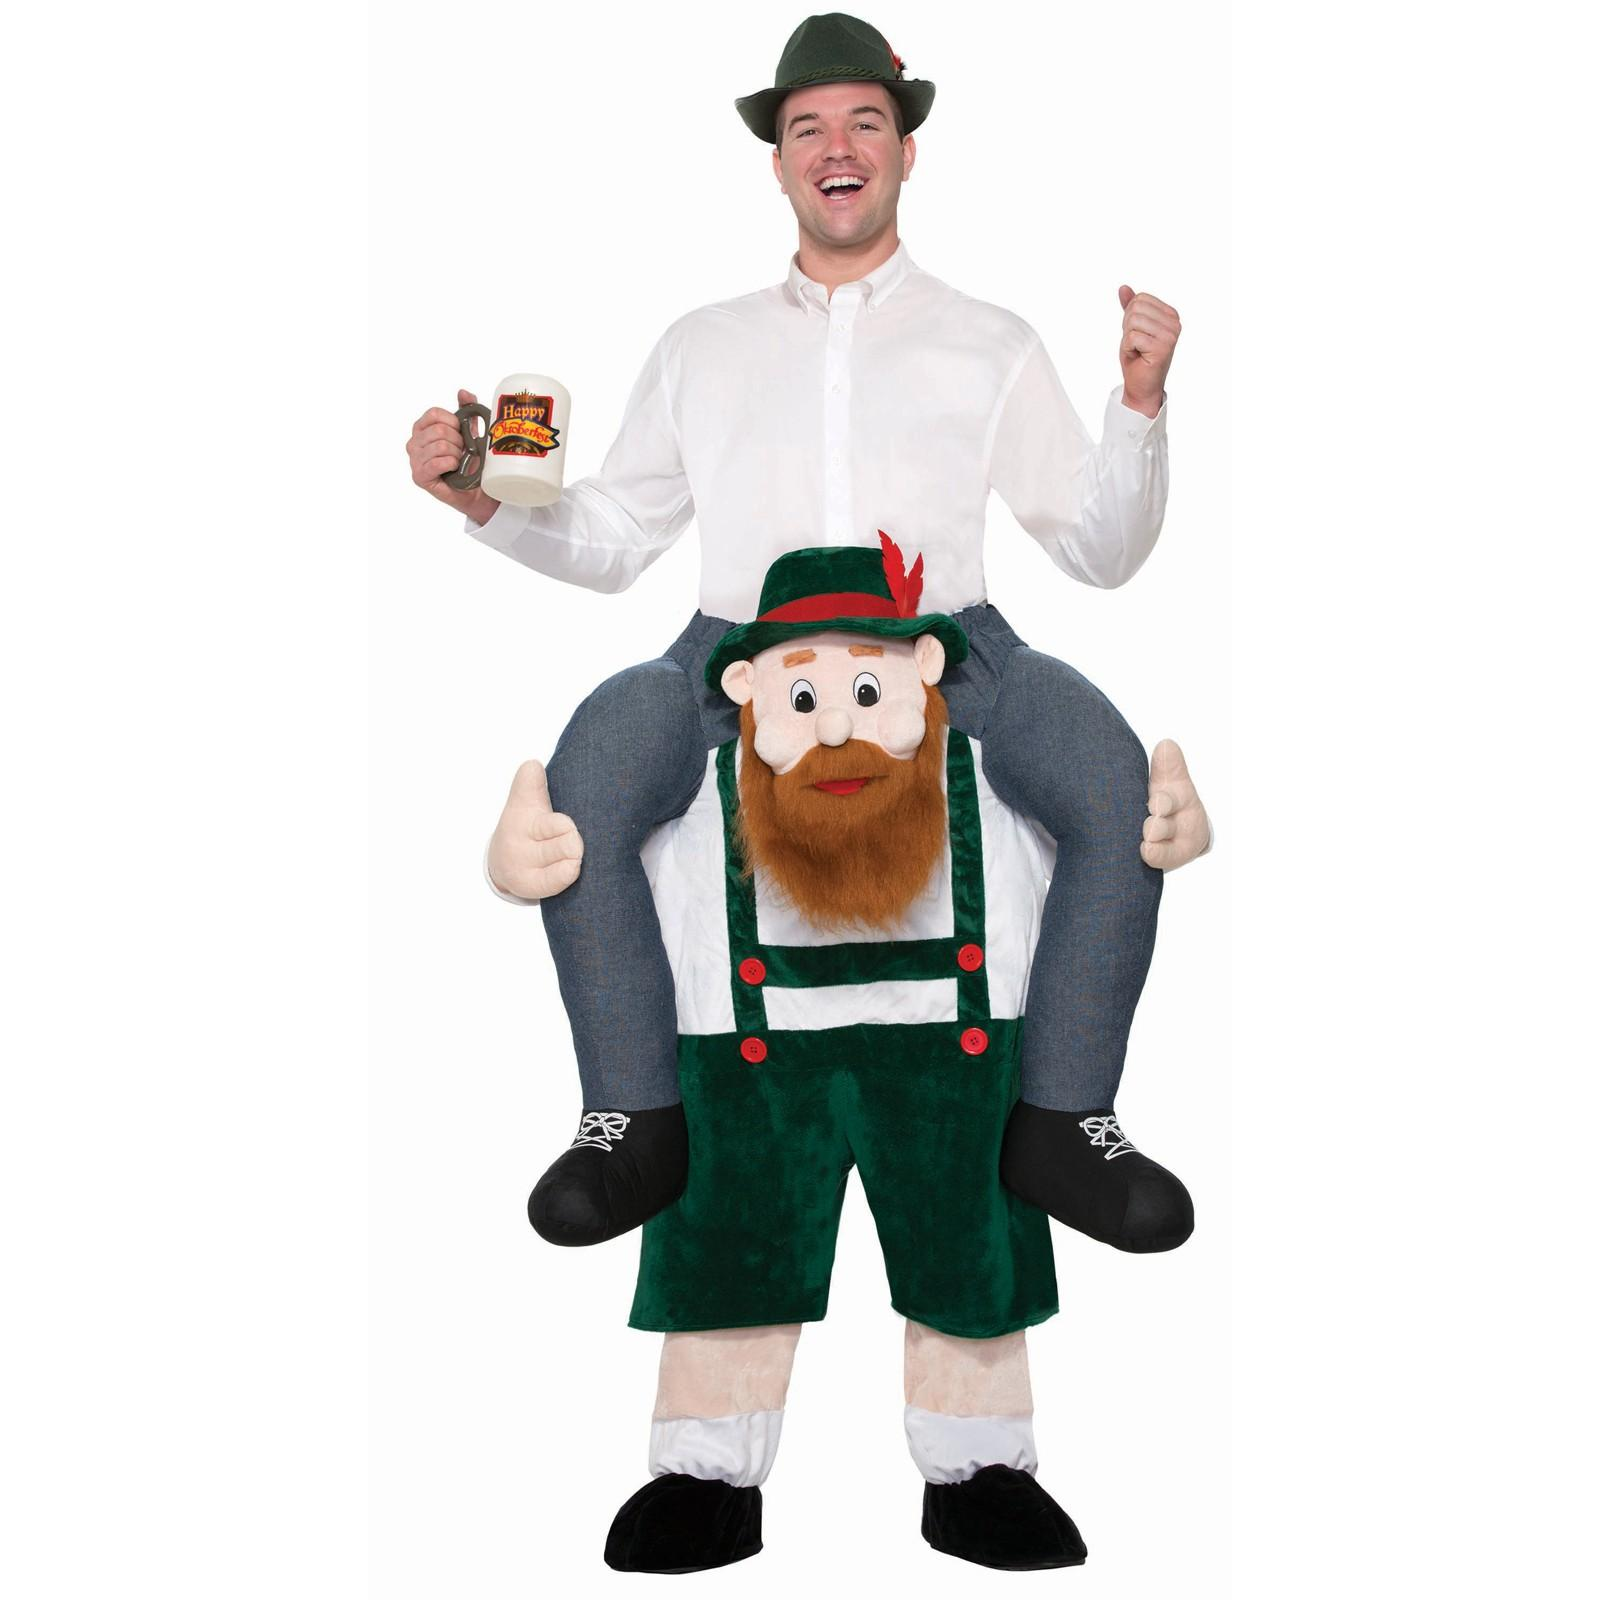 BEER BUDDY RIDE ON OKTOBERFEST COSTUME FOR ADULTS